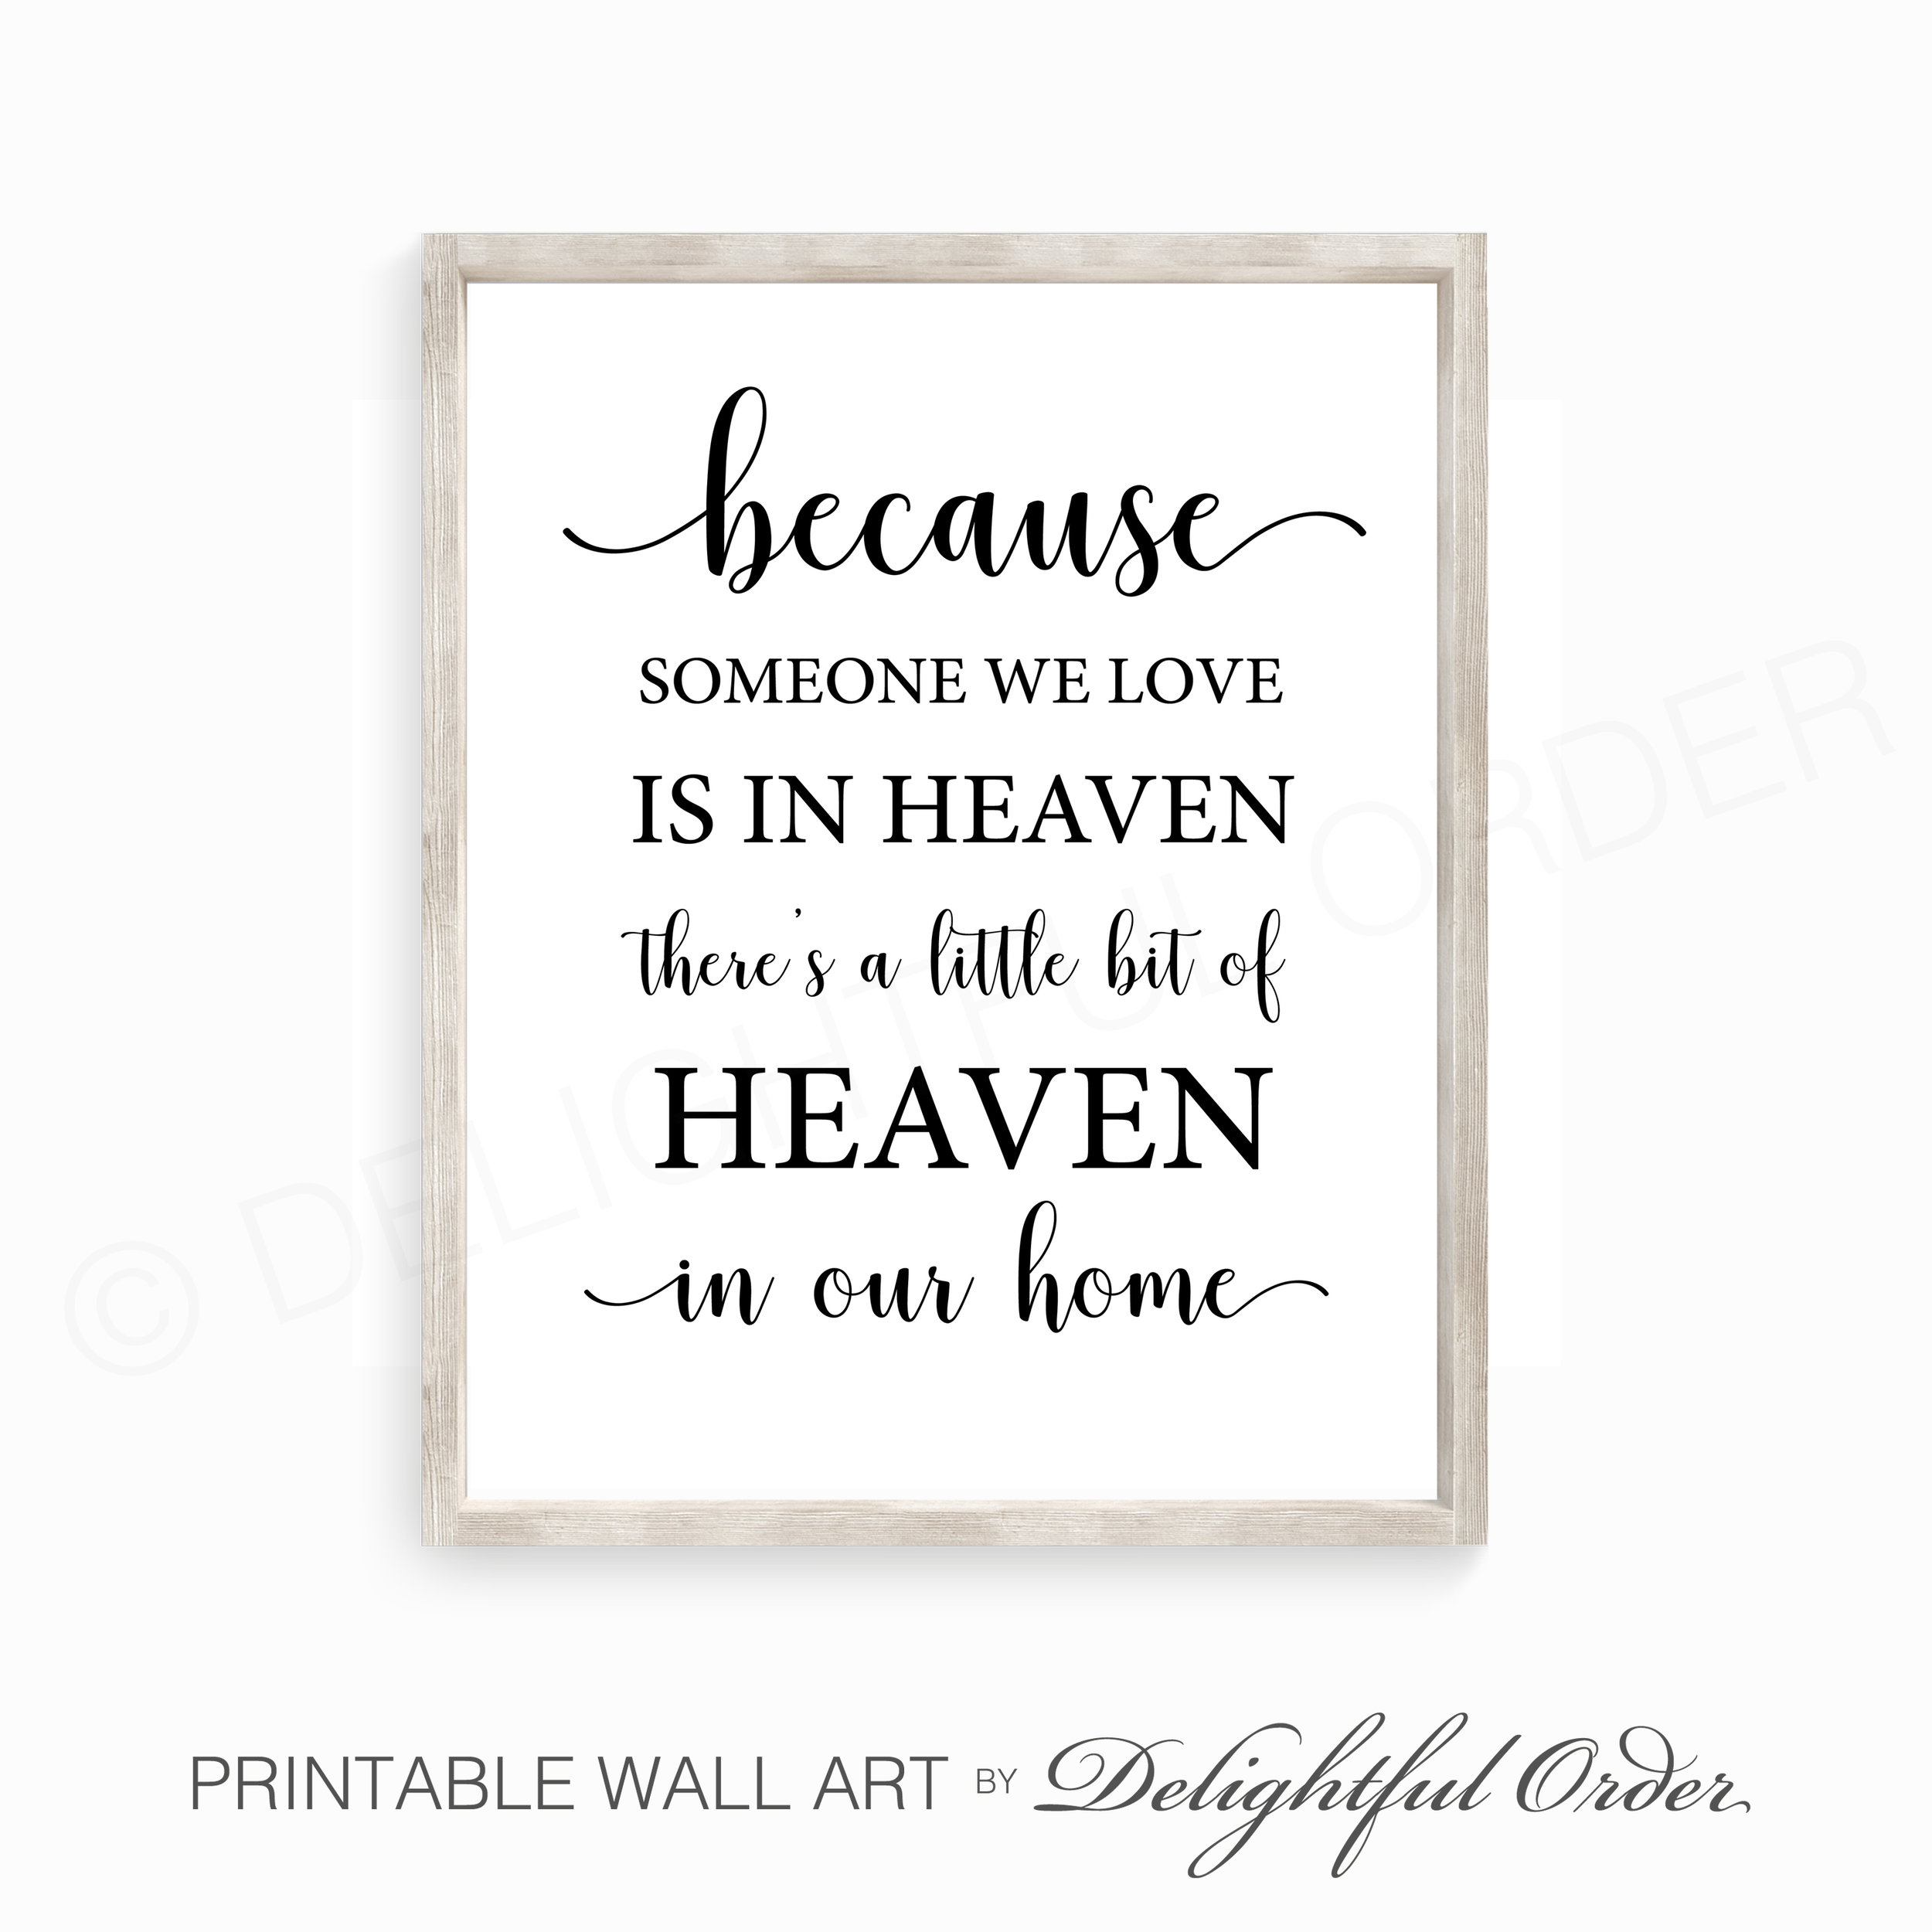 photograph about Printable Wall Art named Considering the fact that Somebody We Delight in is inside Heaven, Printable Wall Artwork, Instantaneous Electronic Down load, By yourself Print, By yourself Body Delicious Obtain